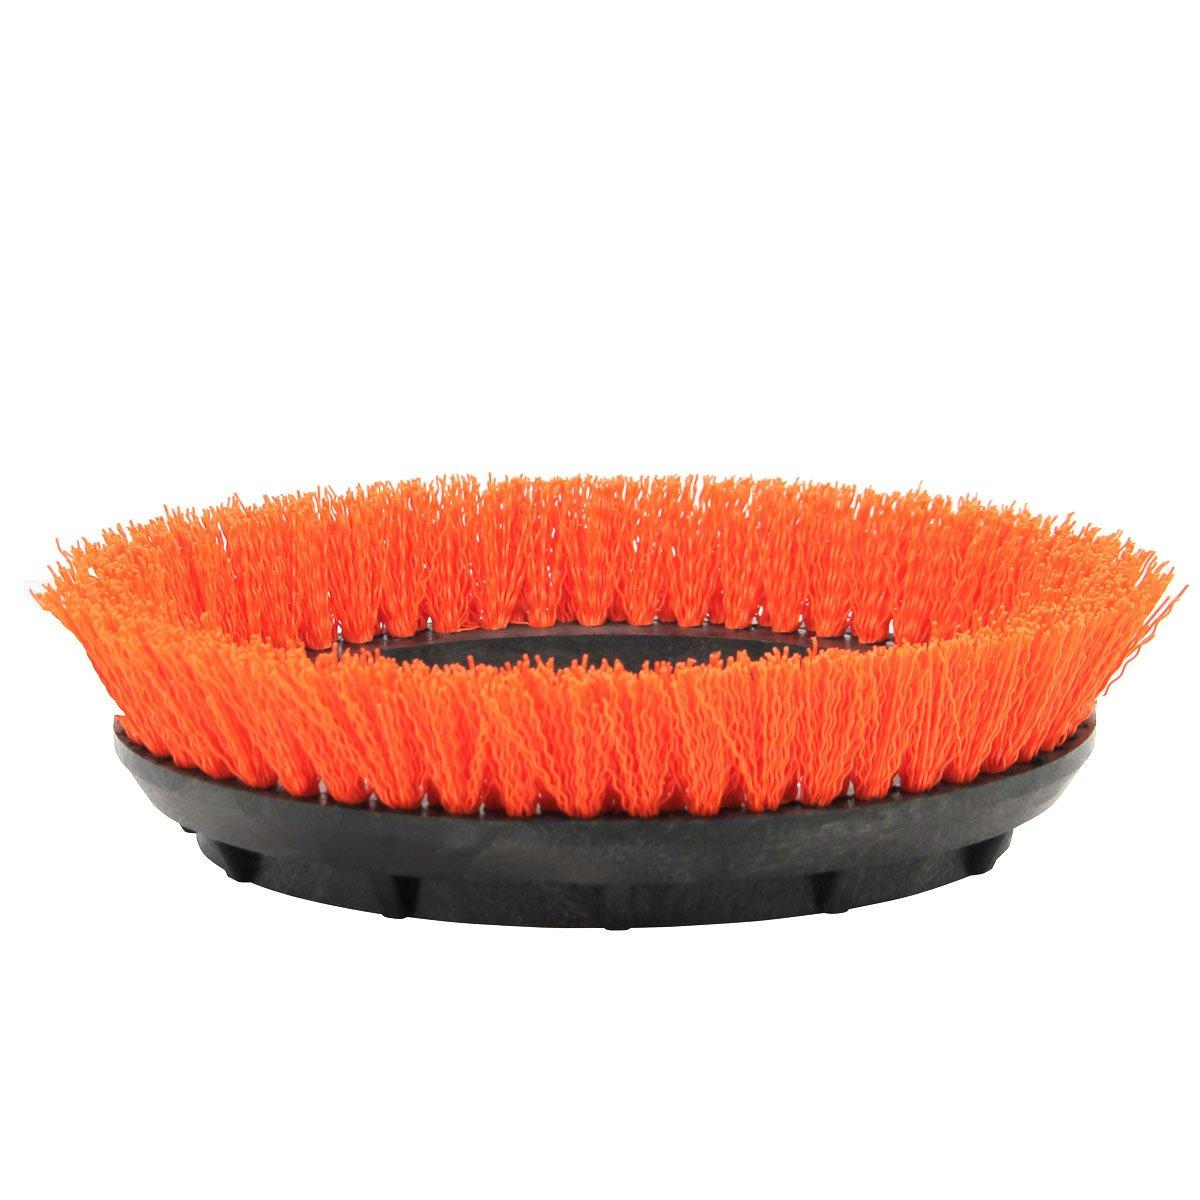 Orbiter Orange Scrub Brush1